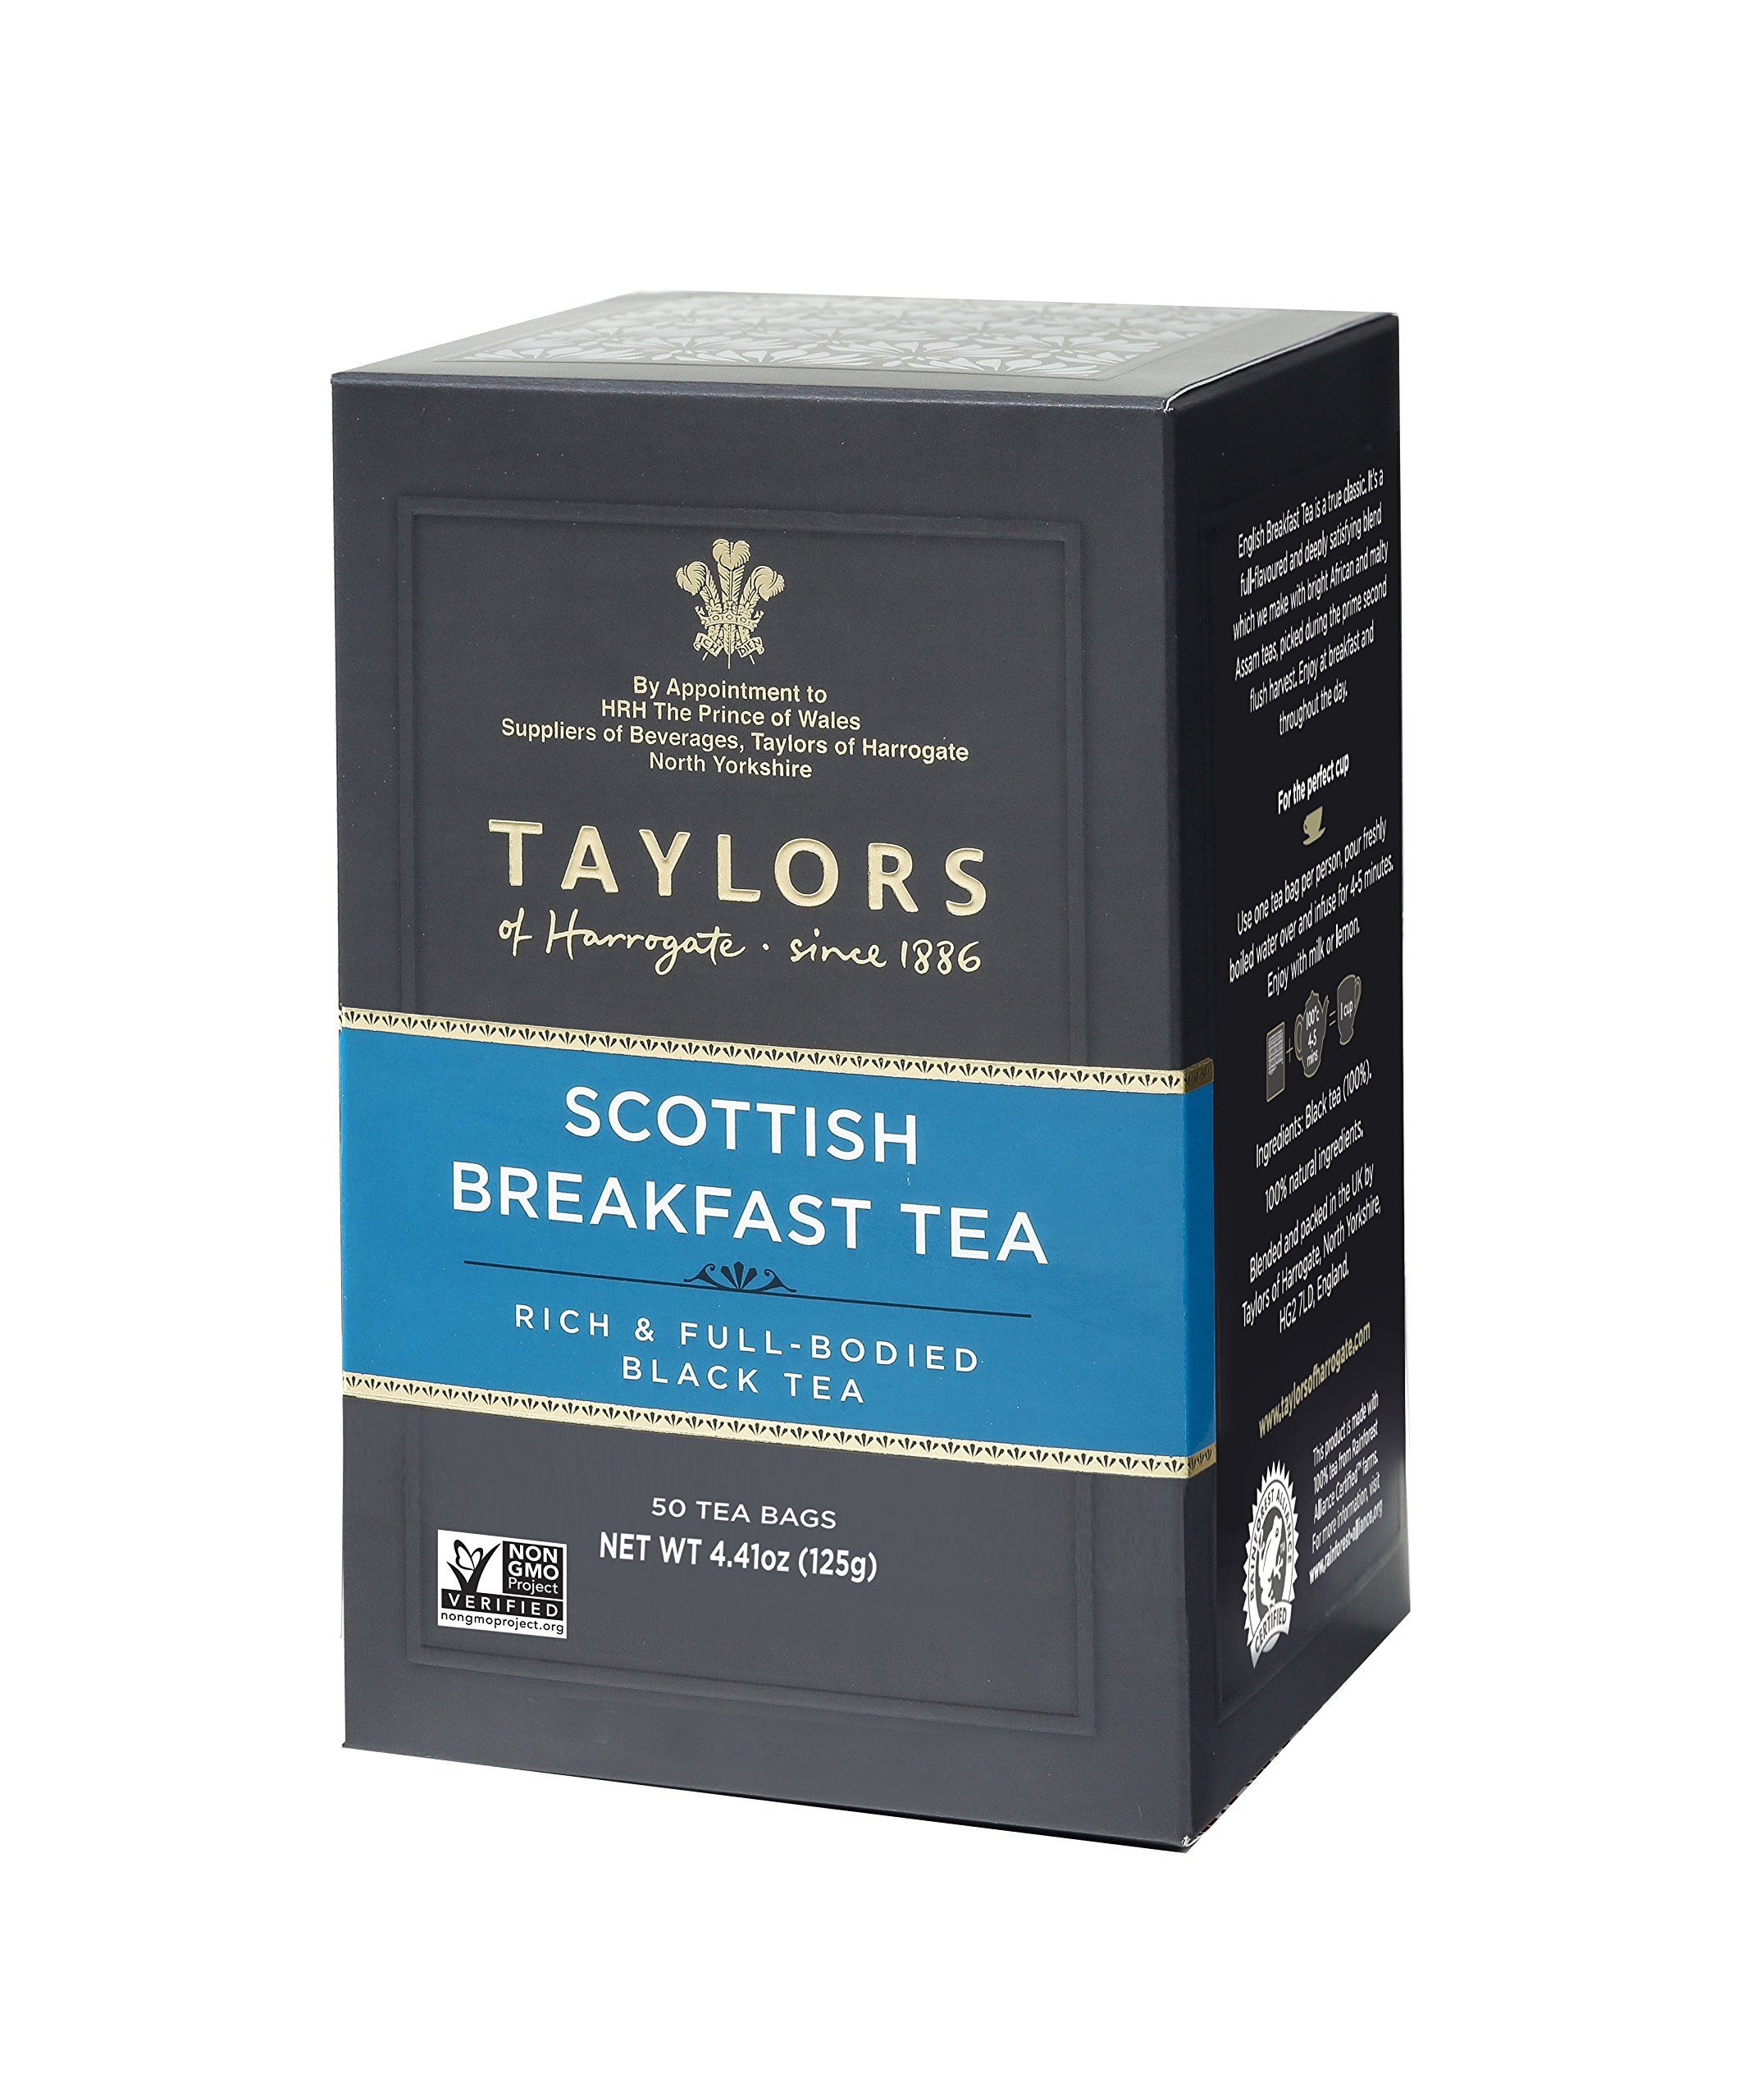 Taylors of Harrogate Scottish Breakfast, 50 Teabags (Pack of 6) by Taylors of Harrogate